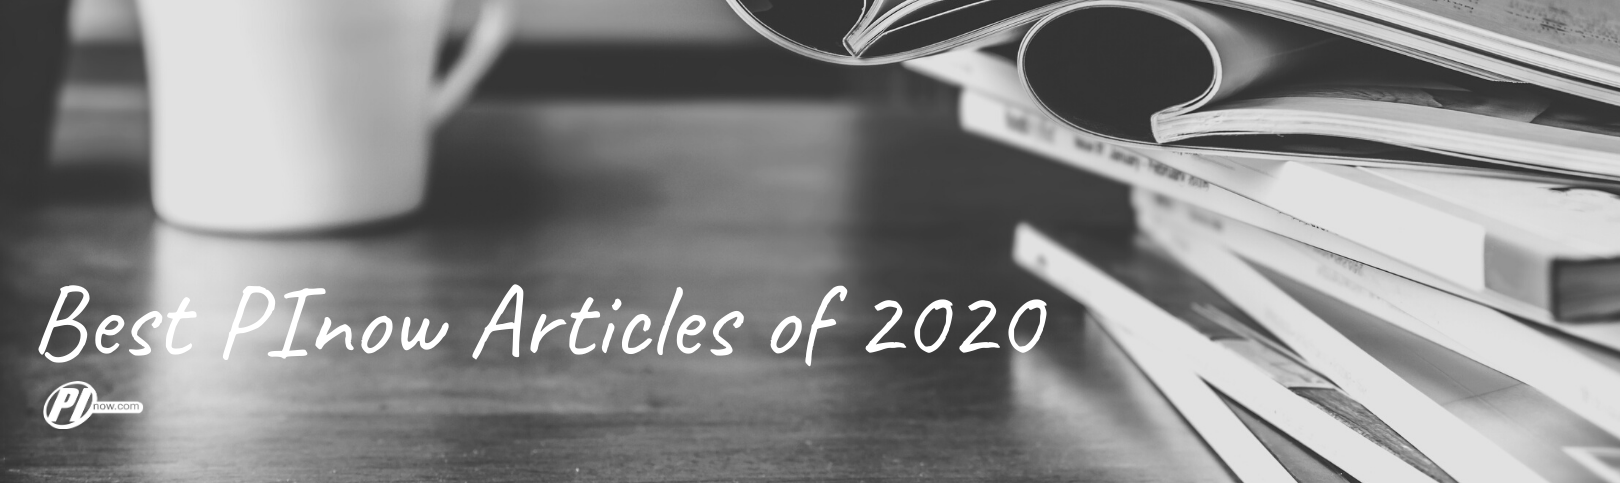 Best PInow Articles of 2020